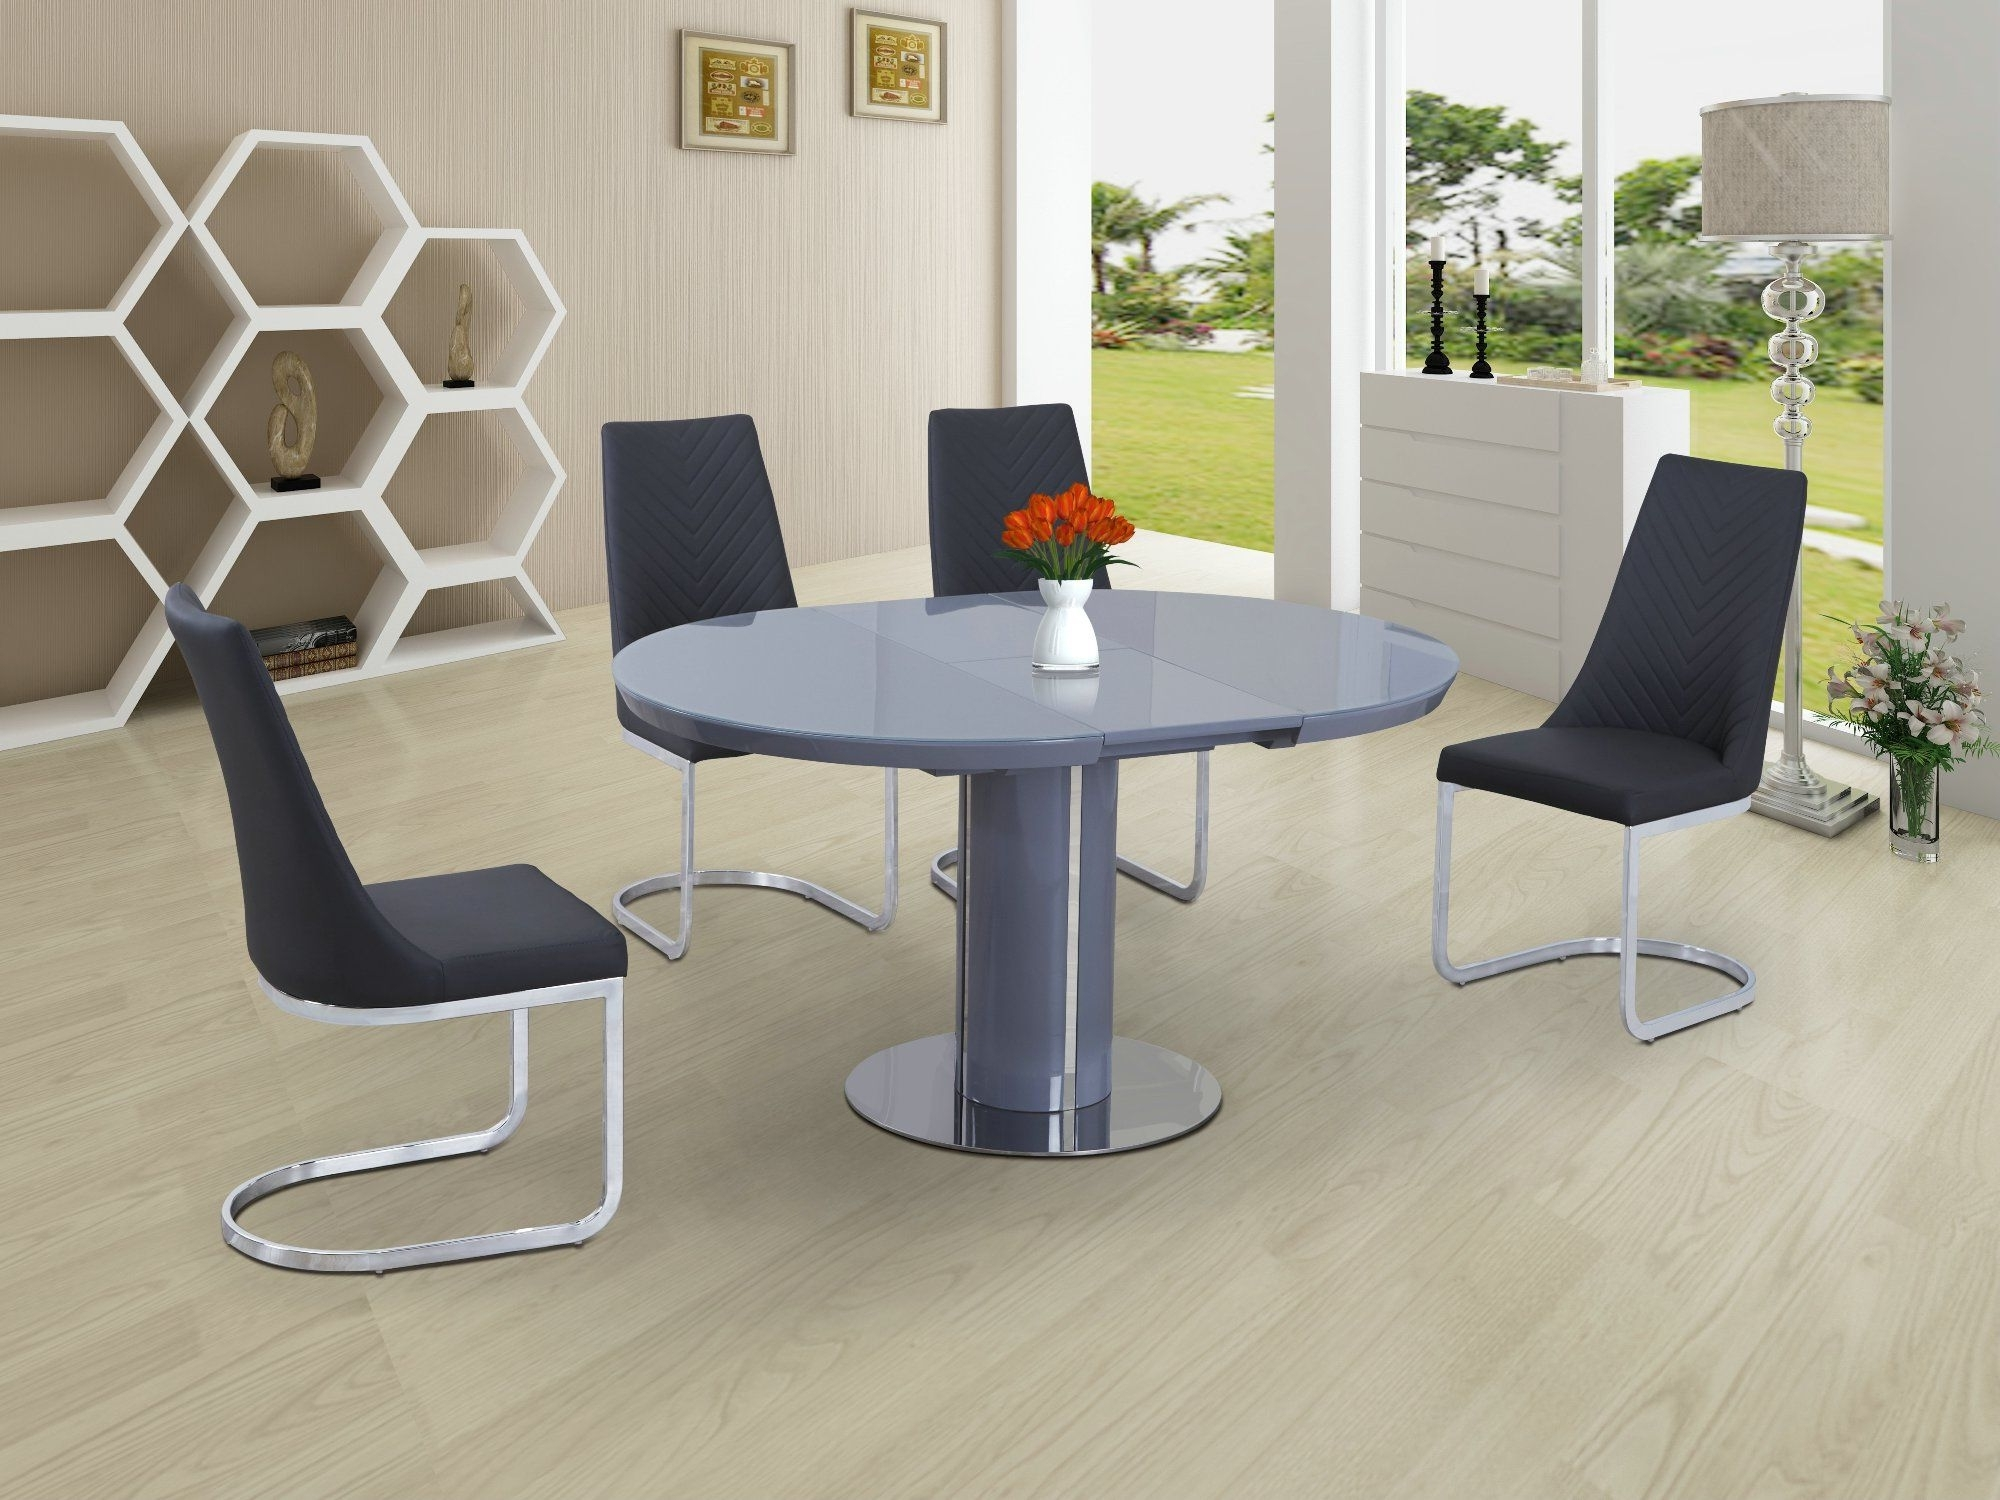 Eclipse Round Oval Gloss & Glass Extending 110 To 145 Cm Dining Throughout Most Recently Released Extending Round Dining Tables (View 6 of 25)